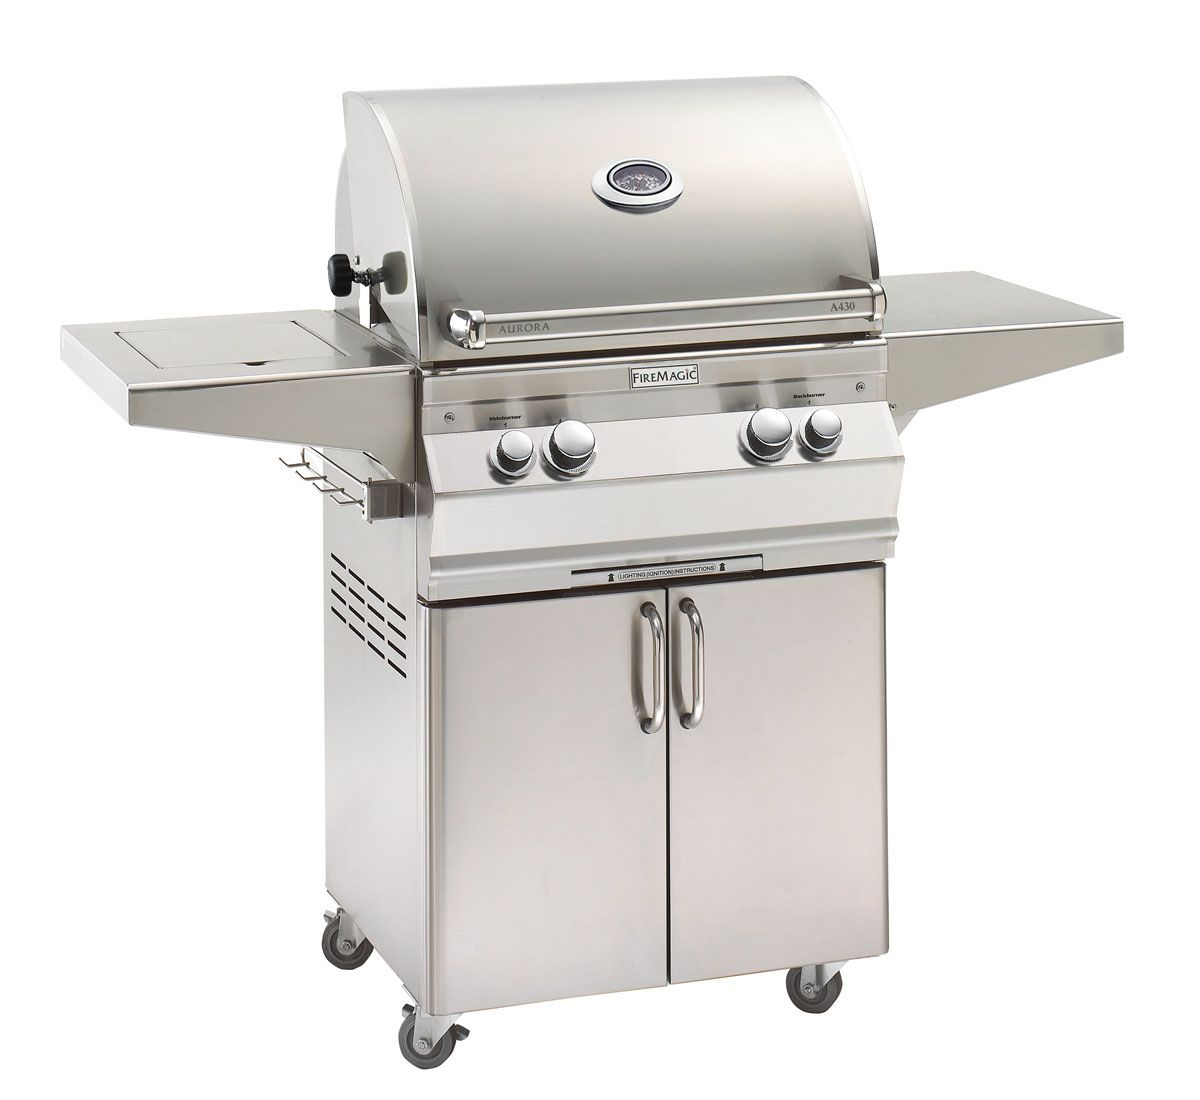 """Fire Magic A430S-8EAN-62 Aurora A430S 24"""" Freestanding Natural Gas Grill With Side Burner  Analog Thermometer"""